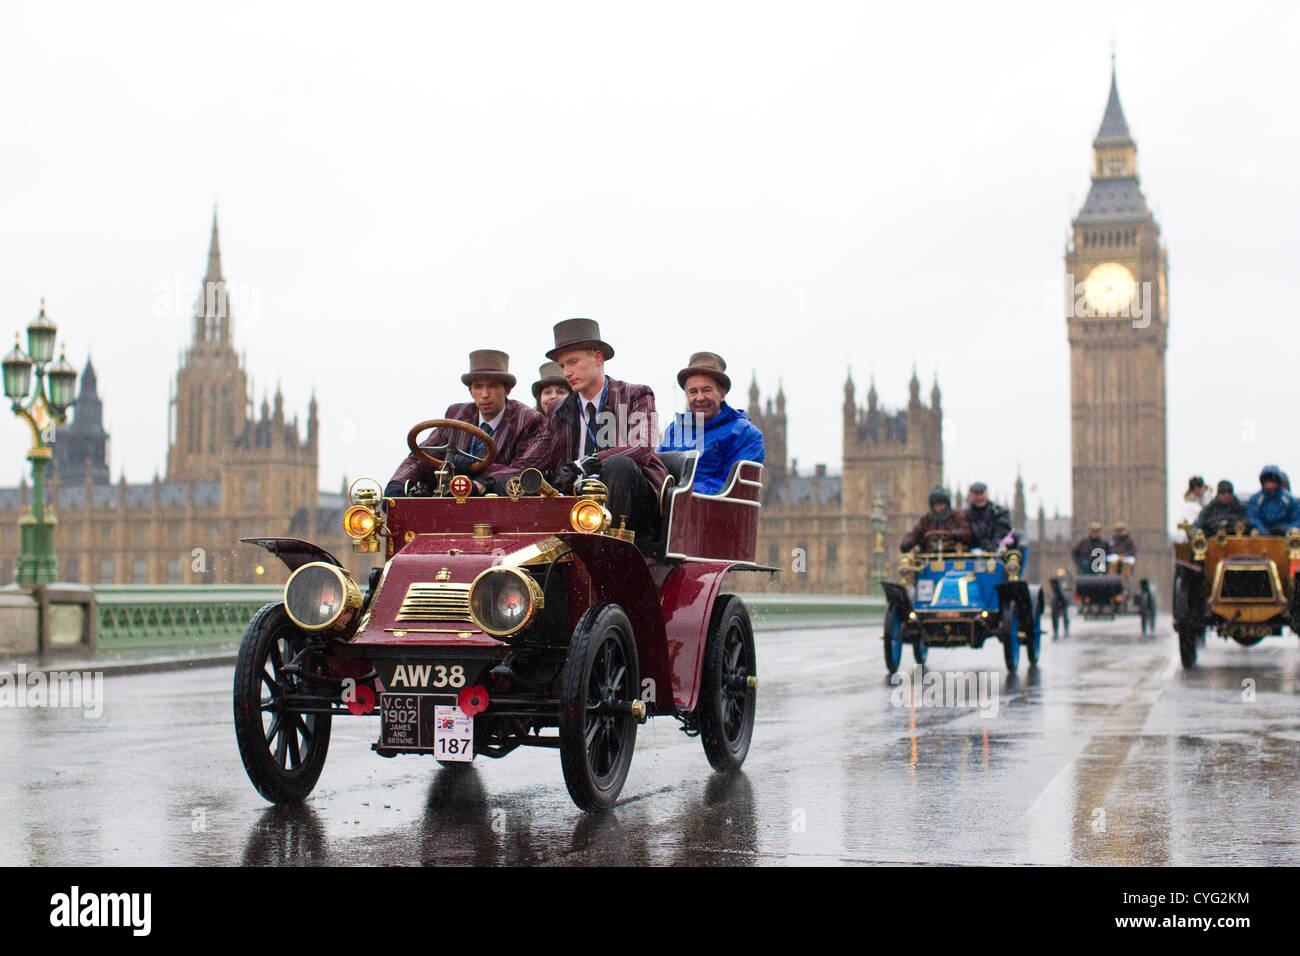 04.11.2012 Picture shows No.187 a James   Browne driven in wet conditions  by Imperial College London wearing top hats crossing Westminster Bridge 81b40177c32